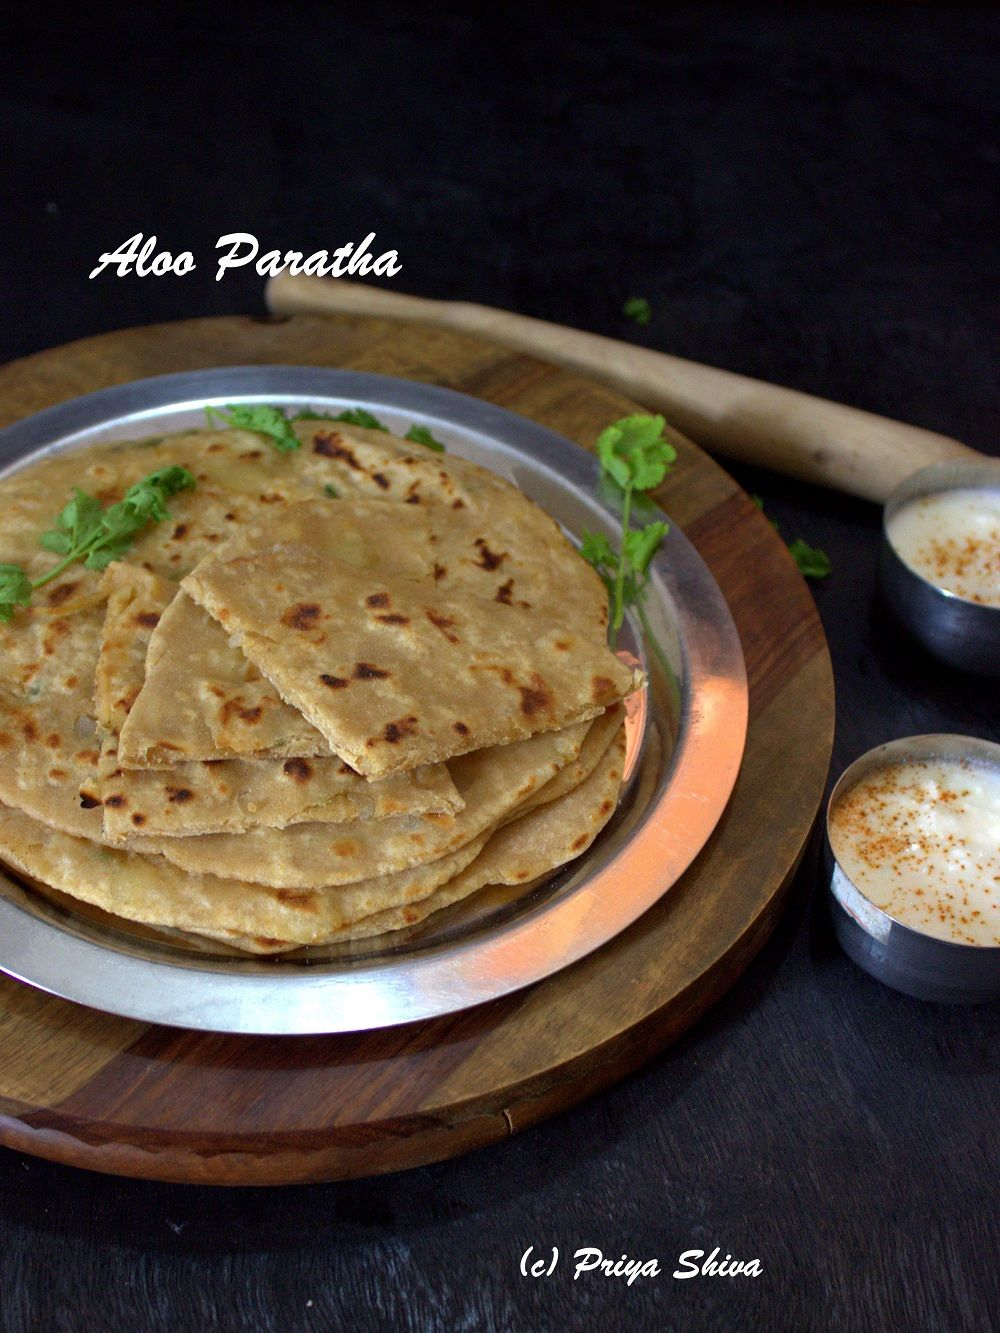 Aloo paratha recipe flat bread food and recipes aloo paratha a delicious flat bread stuffed with potato filling forumfinder Image collections